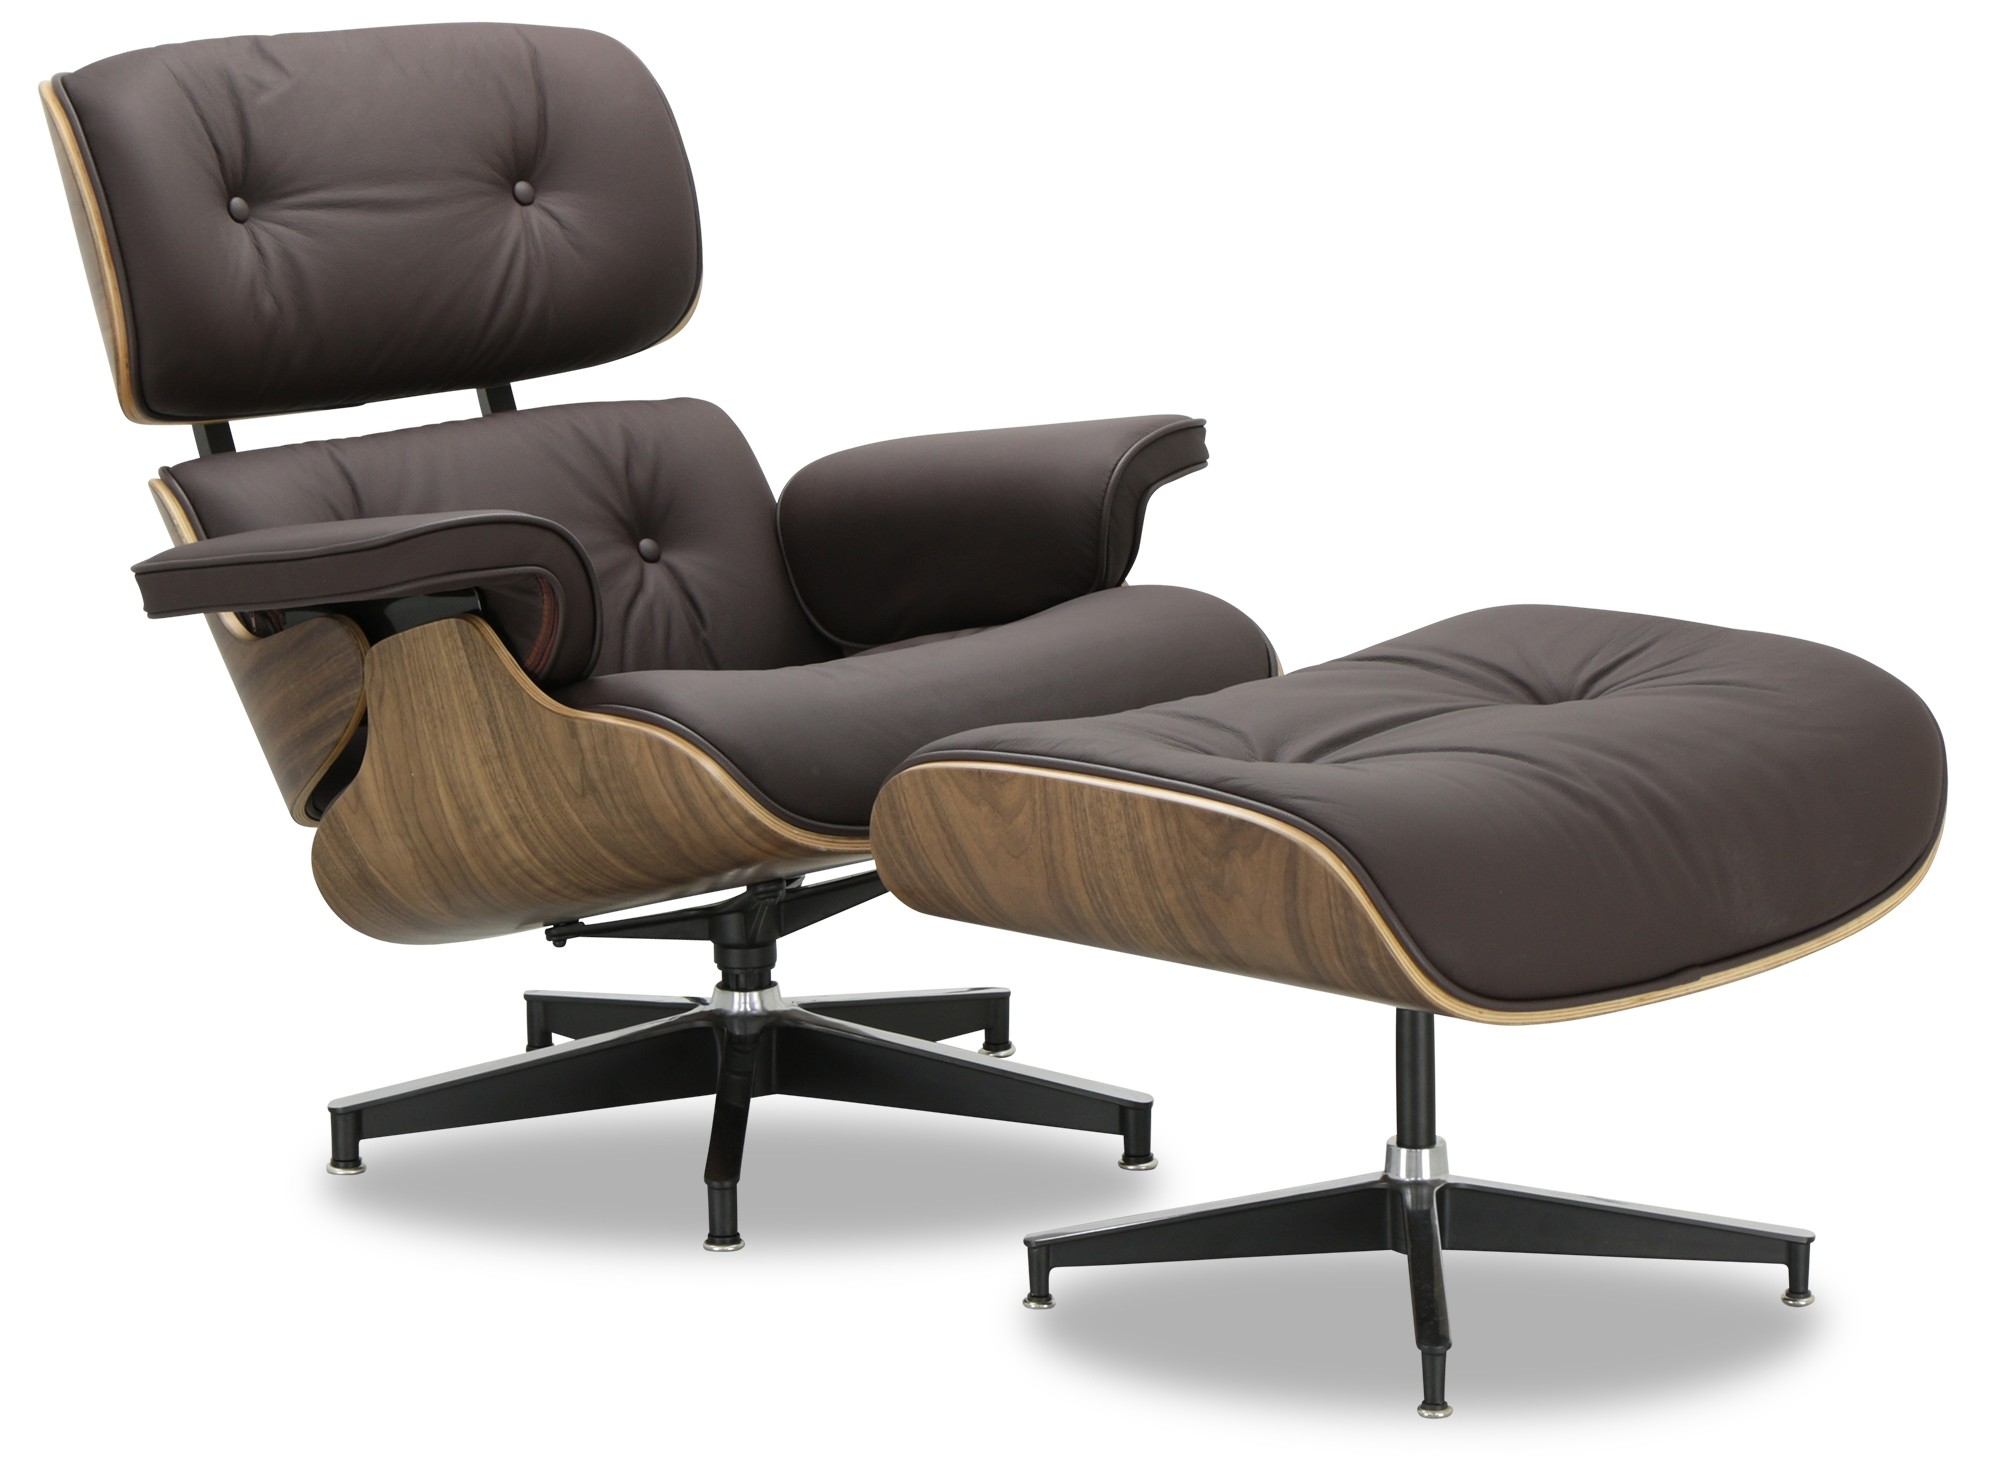 Designer Replica Eames Lounge Chair  Dark Brown